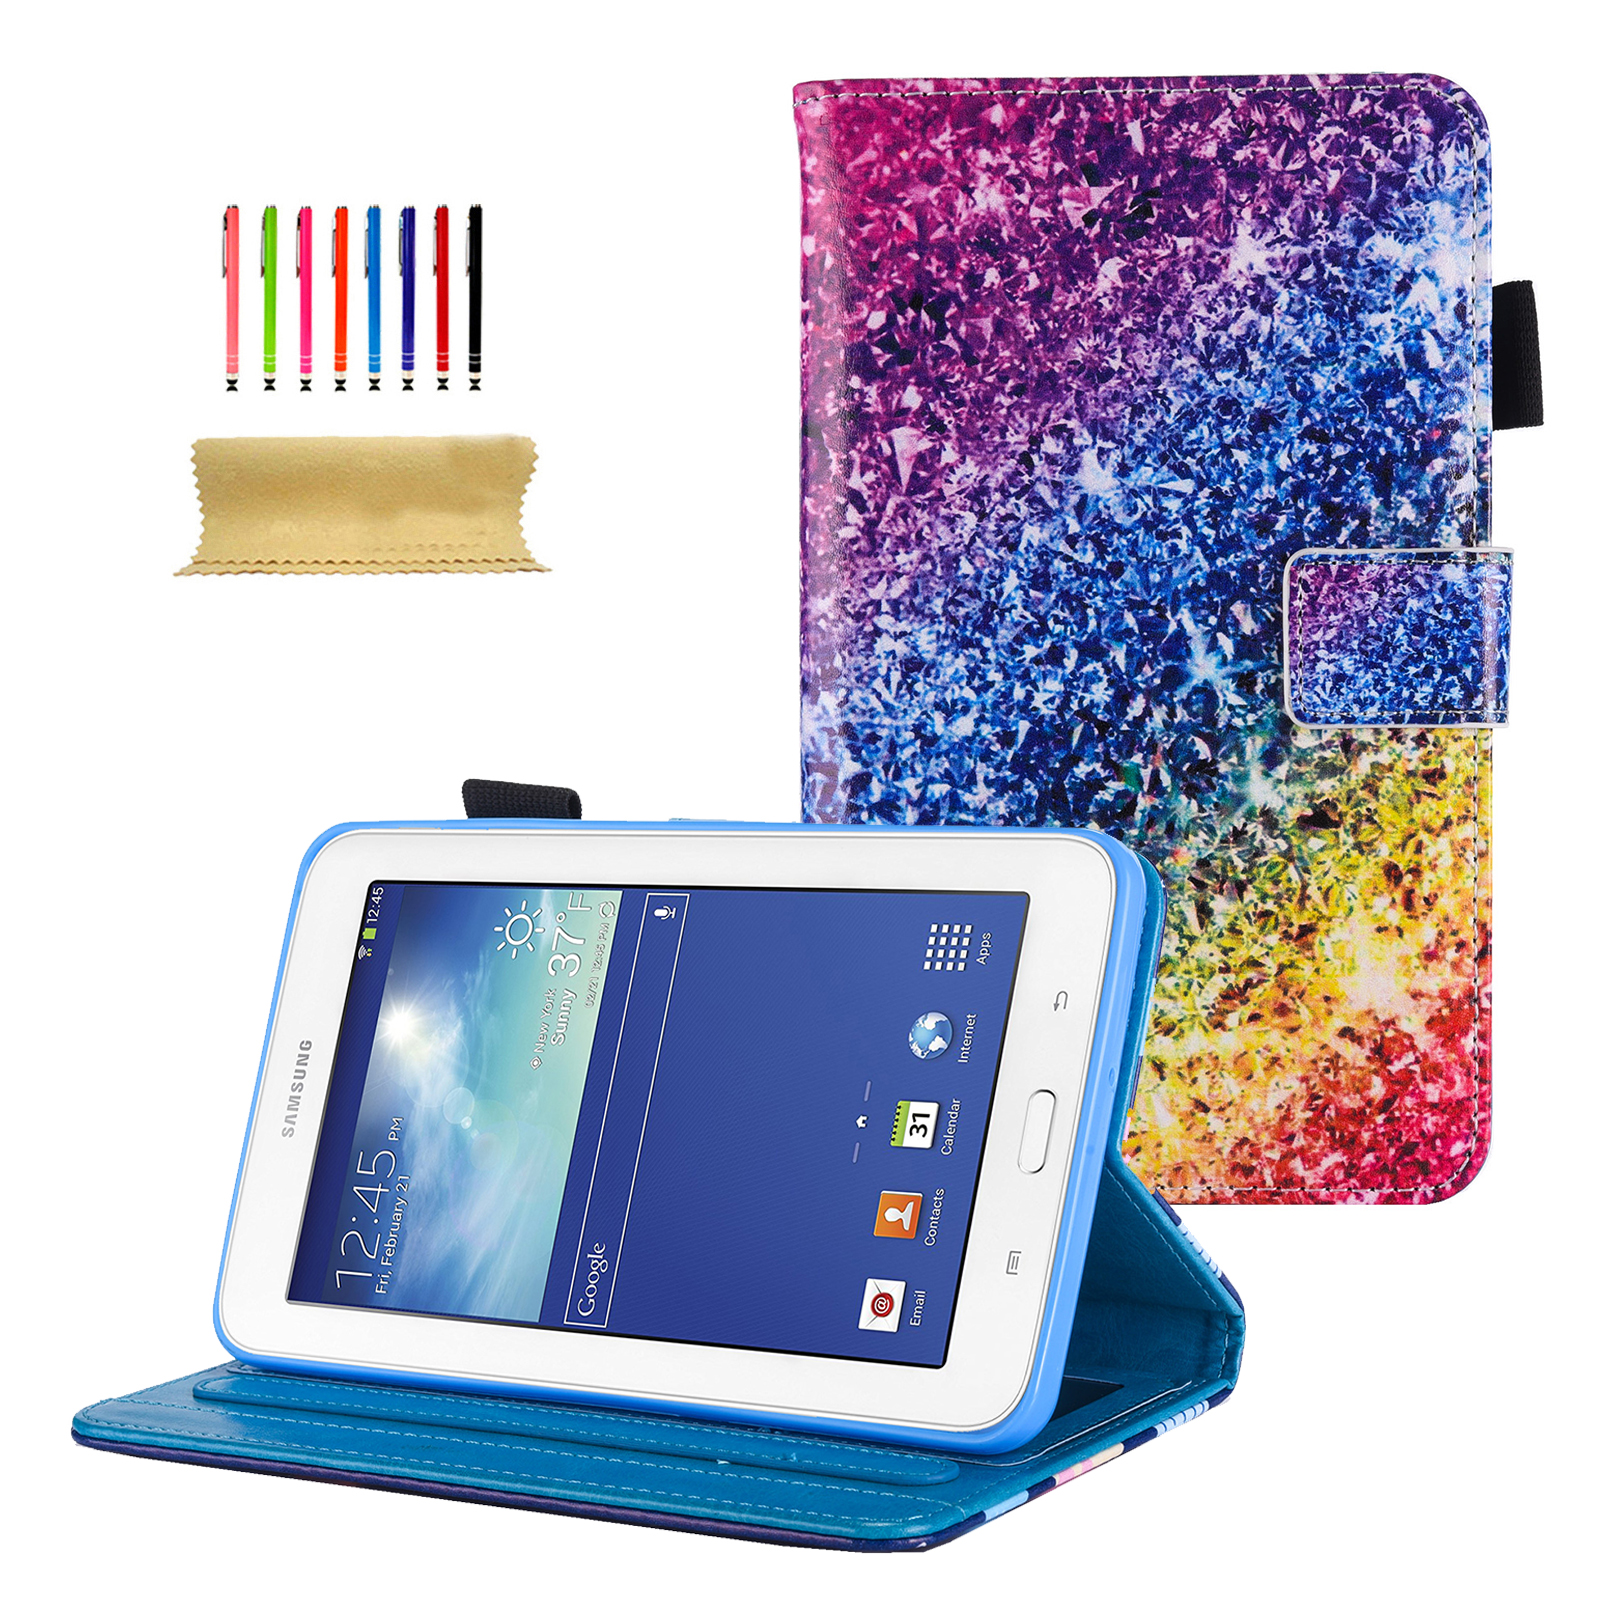 Galaxy Tab E Lite 7.0/ Galaxy Tab 3 Lite 7.0 (SM-T110/ T111/ T113/ T116) Case, Goodest PU Leather Folio Case Cover for Samsung 7.0 Inch Tablet with Auto Wake/Sleep & Card Slots, Silver Sand